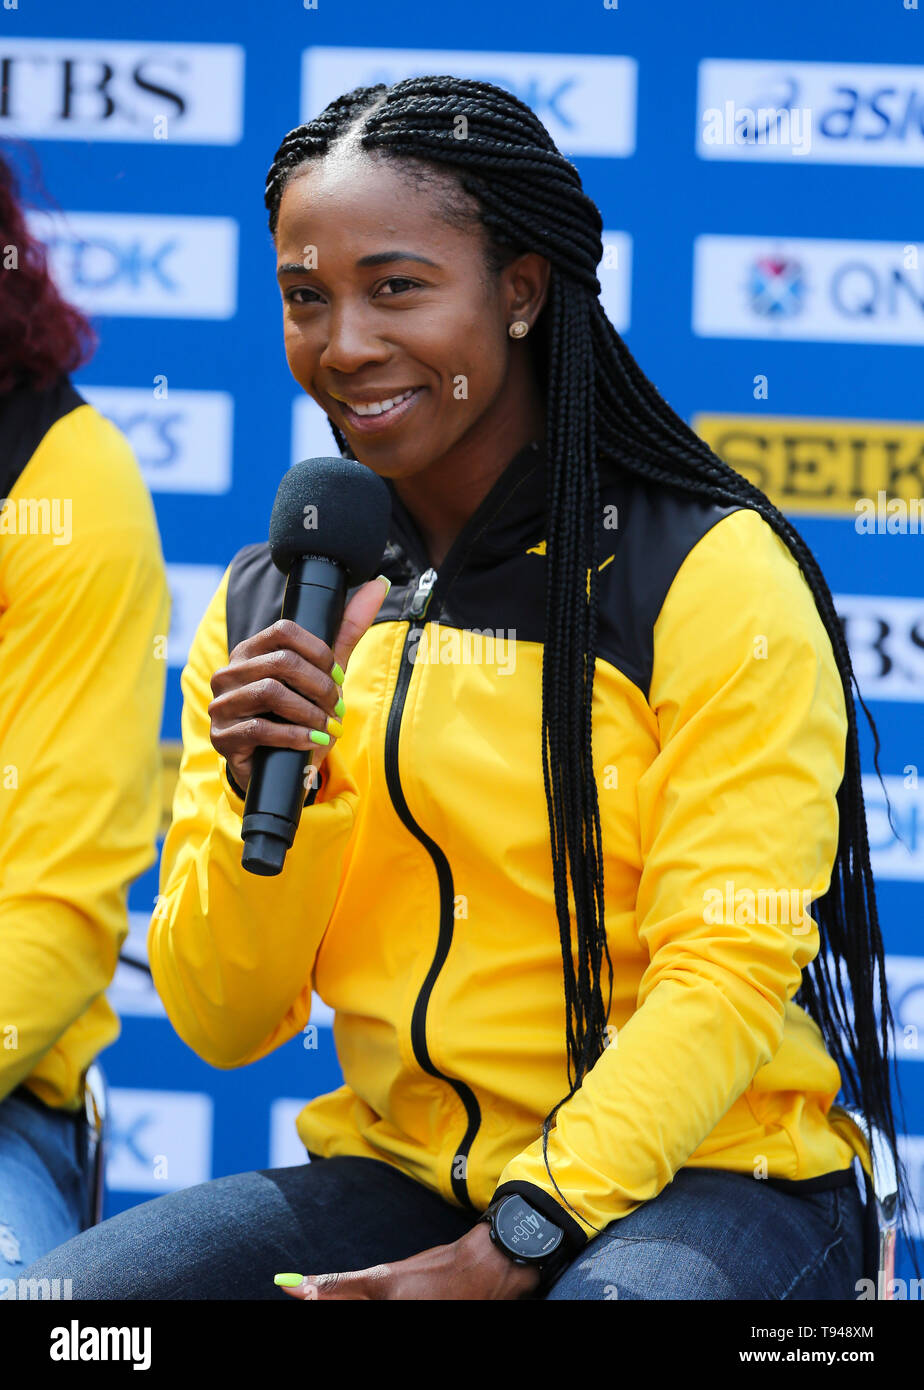 YOKOHAMA, JAPAN - MAY 10: Shelly-Ann Fraser-Pryce of Jamaica during the official press conference of the 2019 IAAF World Relay Championships at the Nissan Stadium on May 10, 2019 in Yokohama, Japan. (Photo by Roger Sedres for the IAAF) Stock Photo